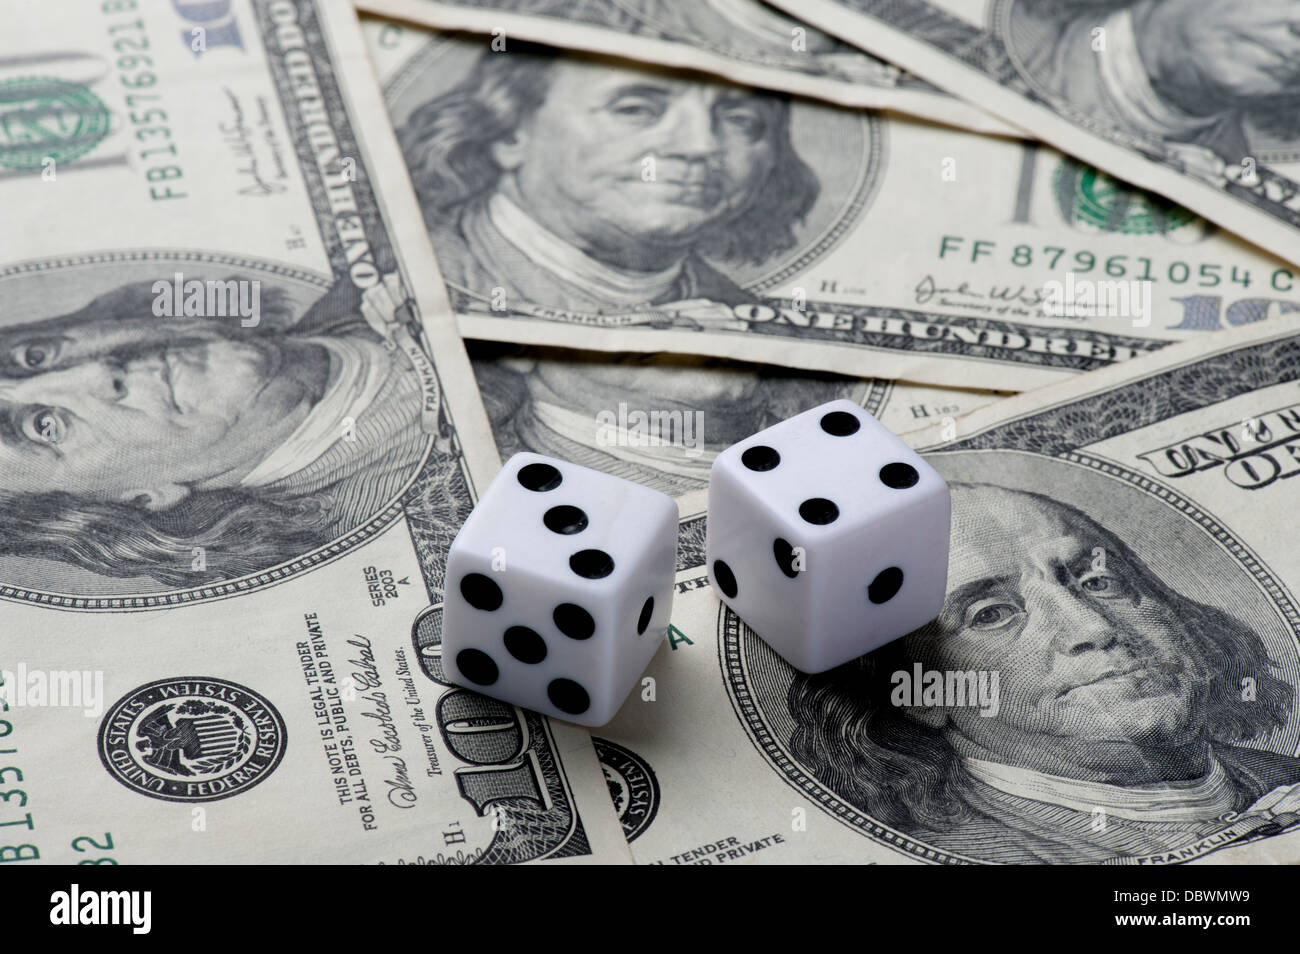 pair of dice on $100 bills concept gambling - Stock Image